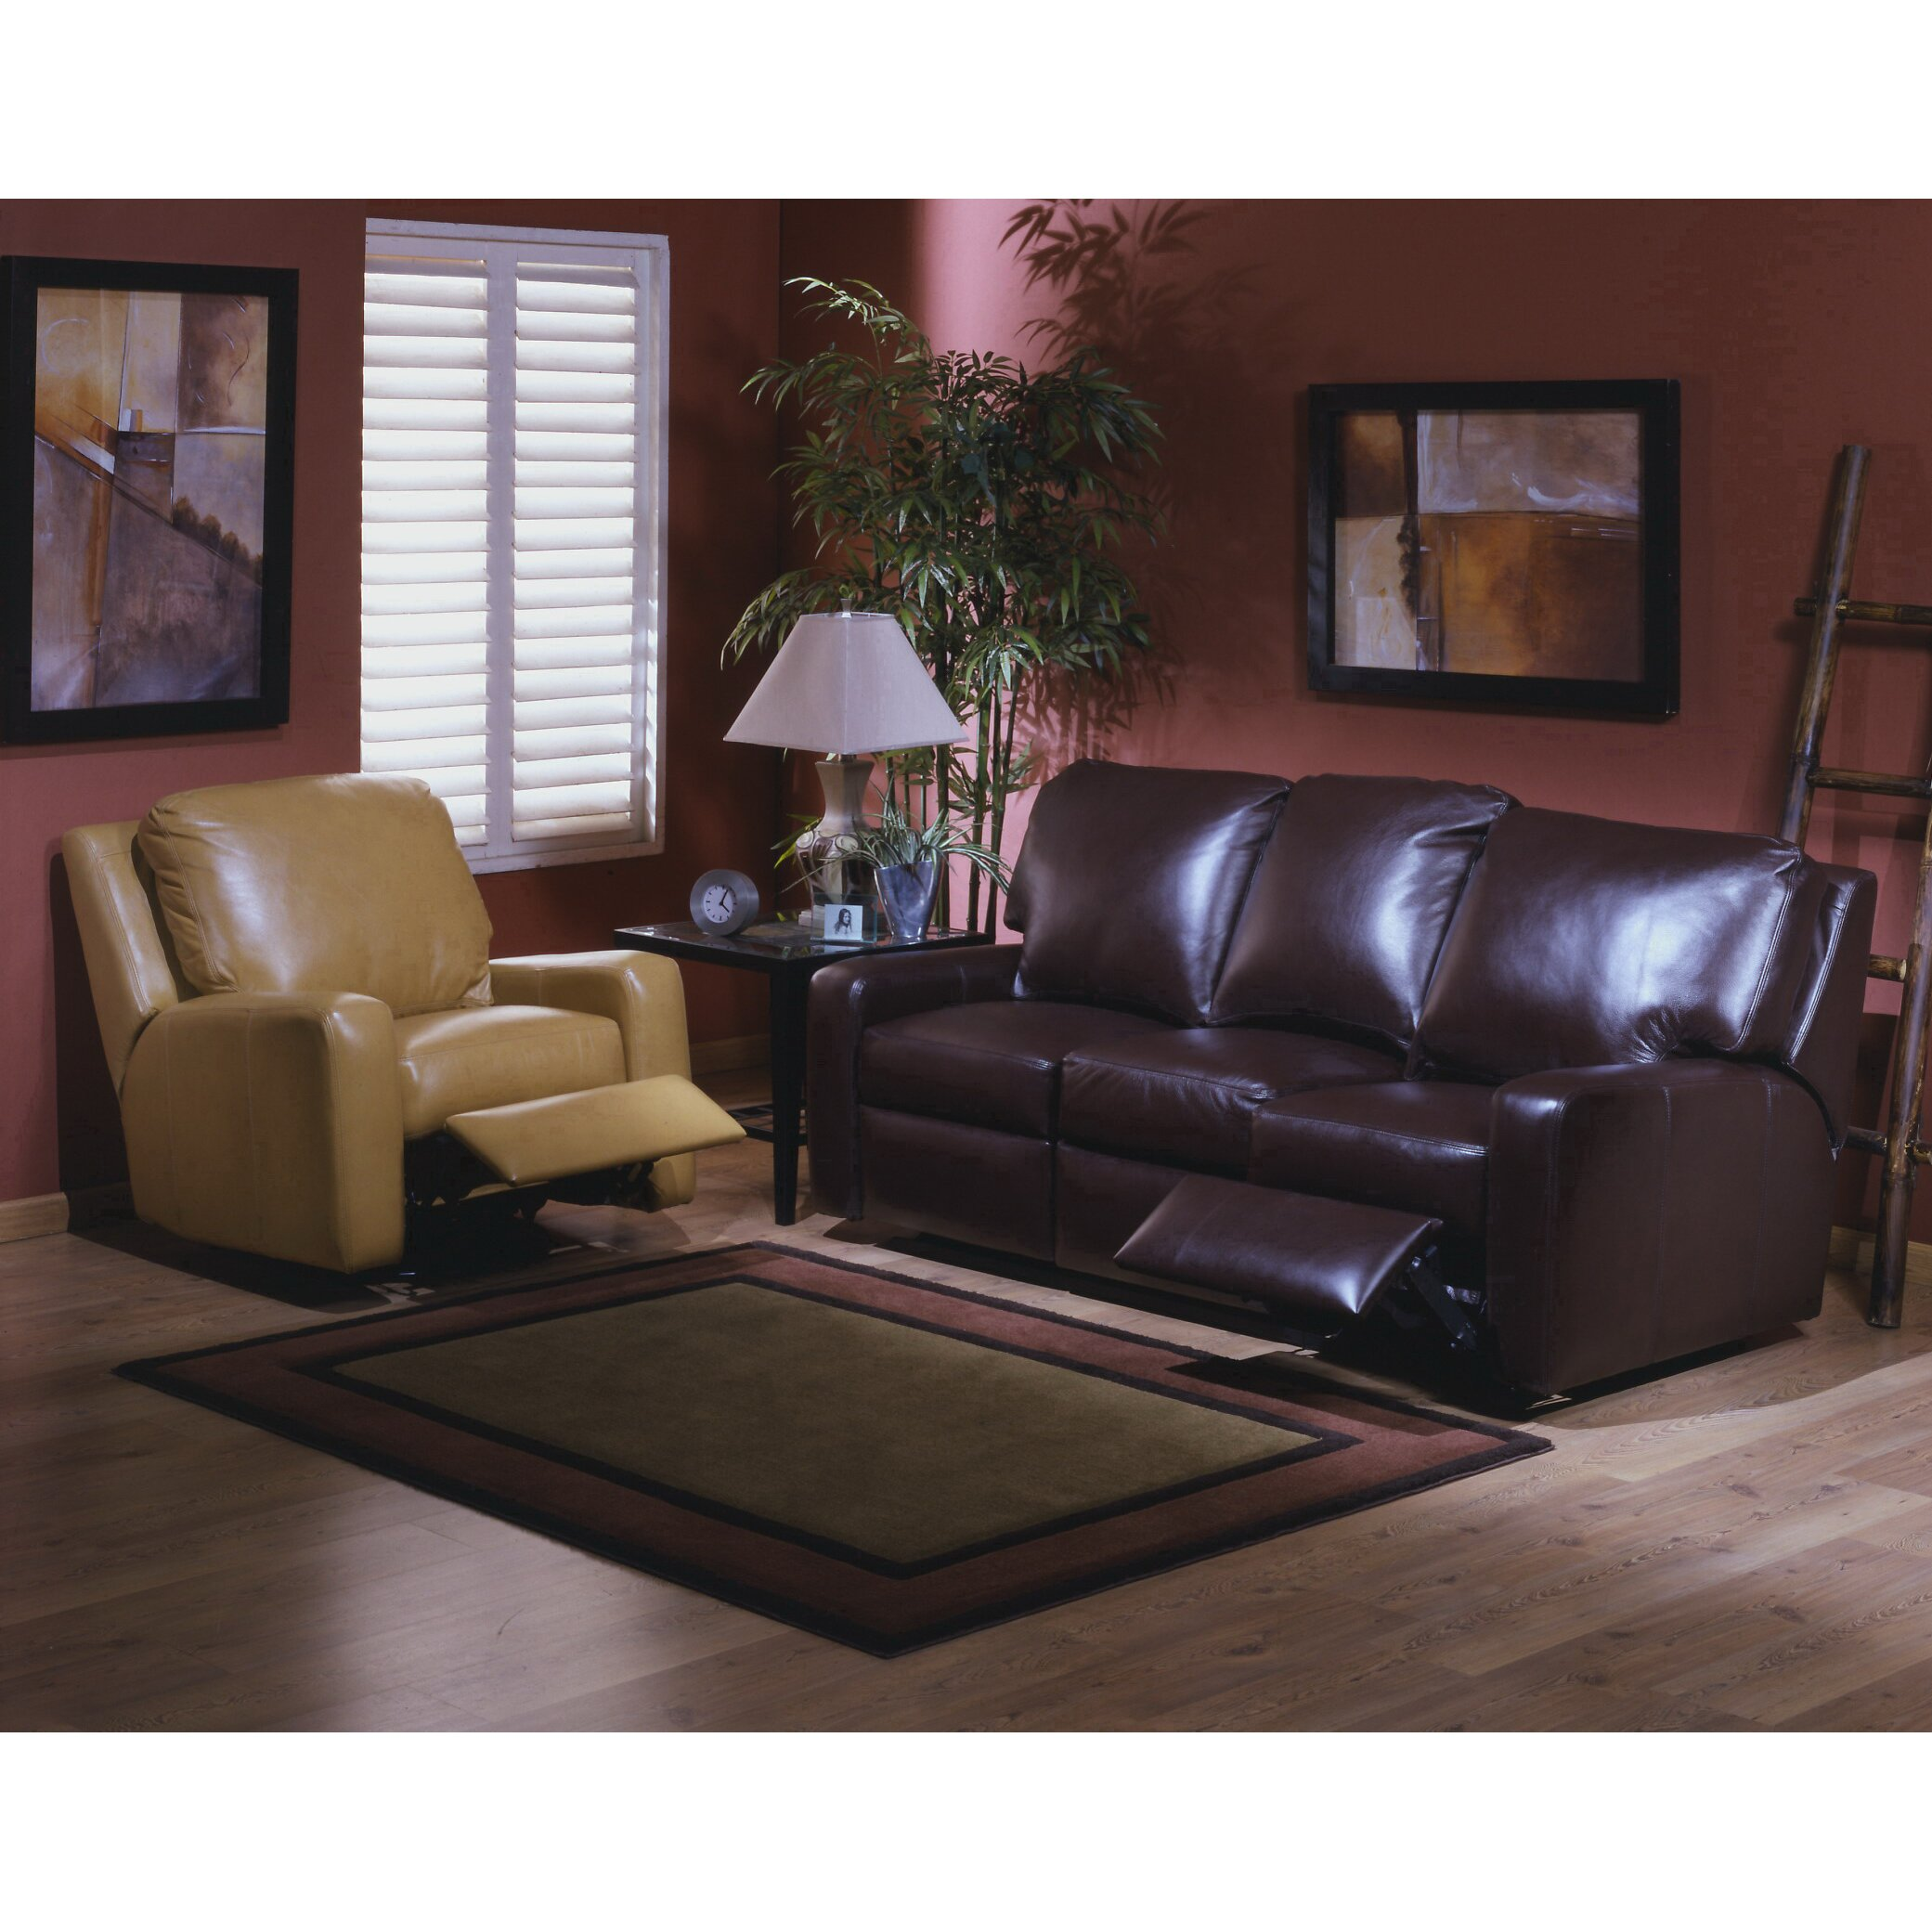 Omnia leather mirage reclining leather living room set for Leather living room sets